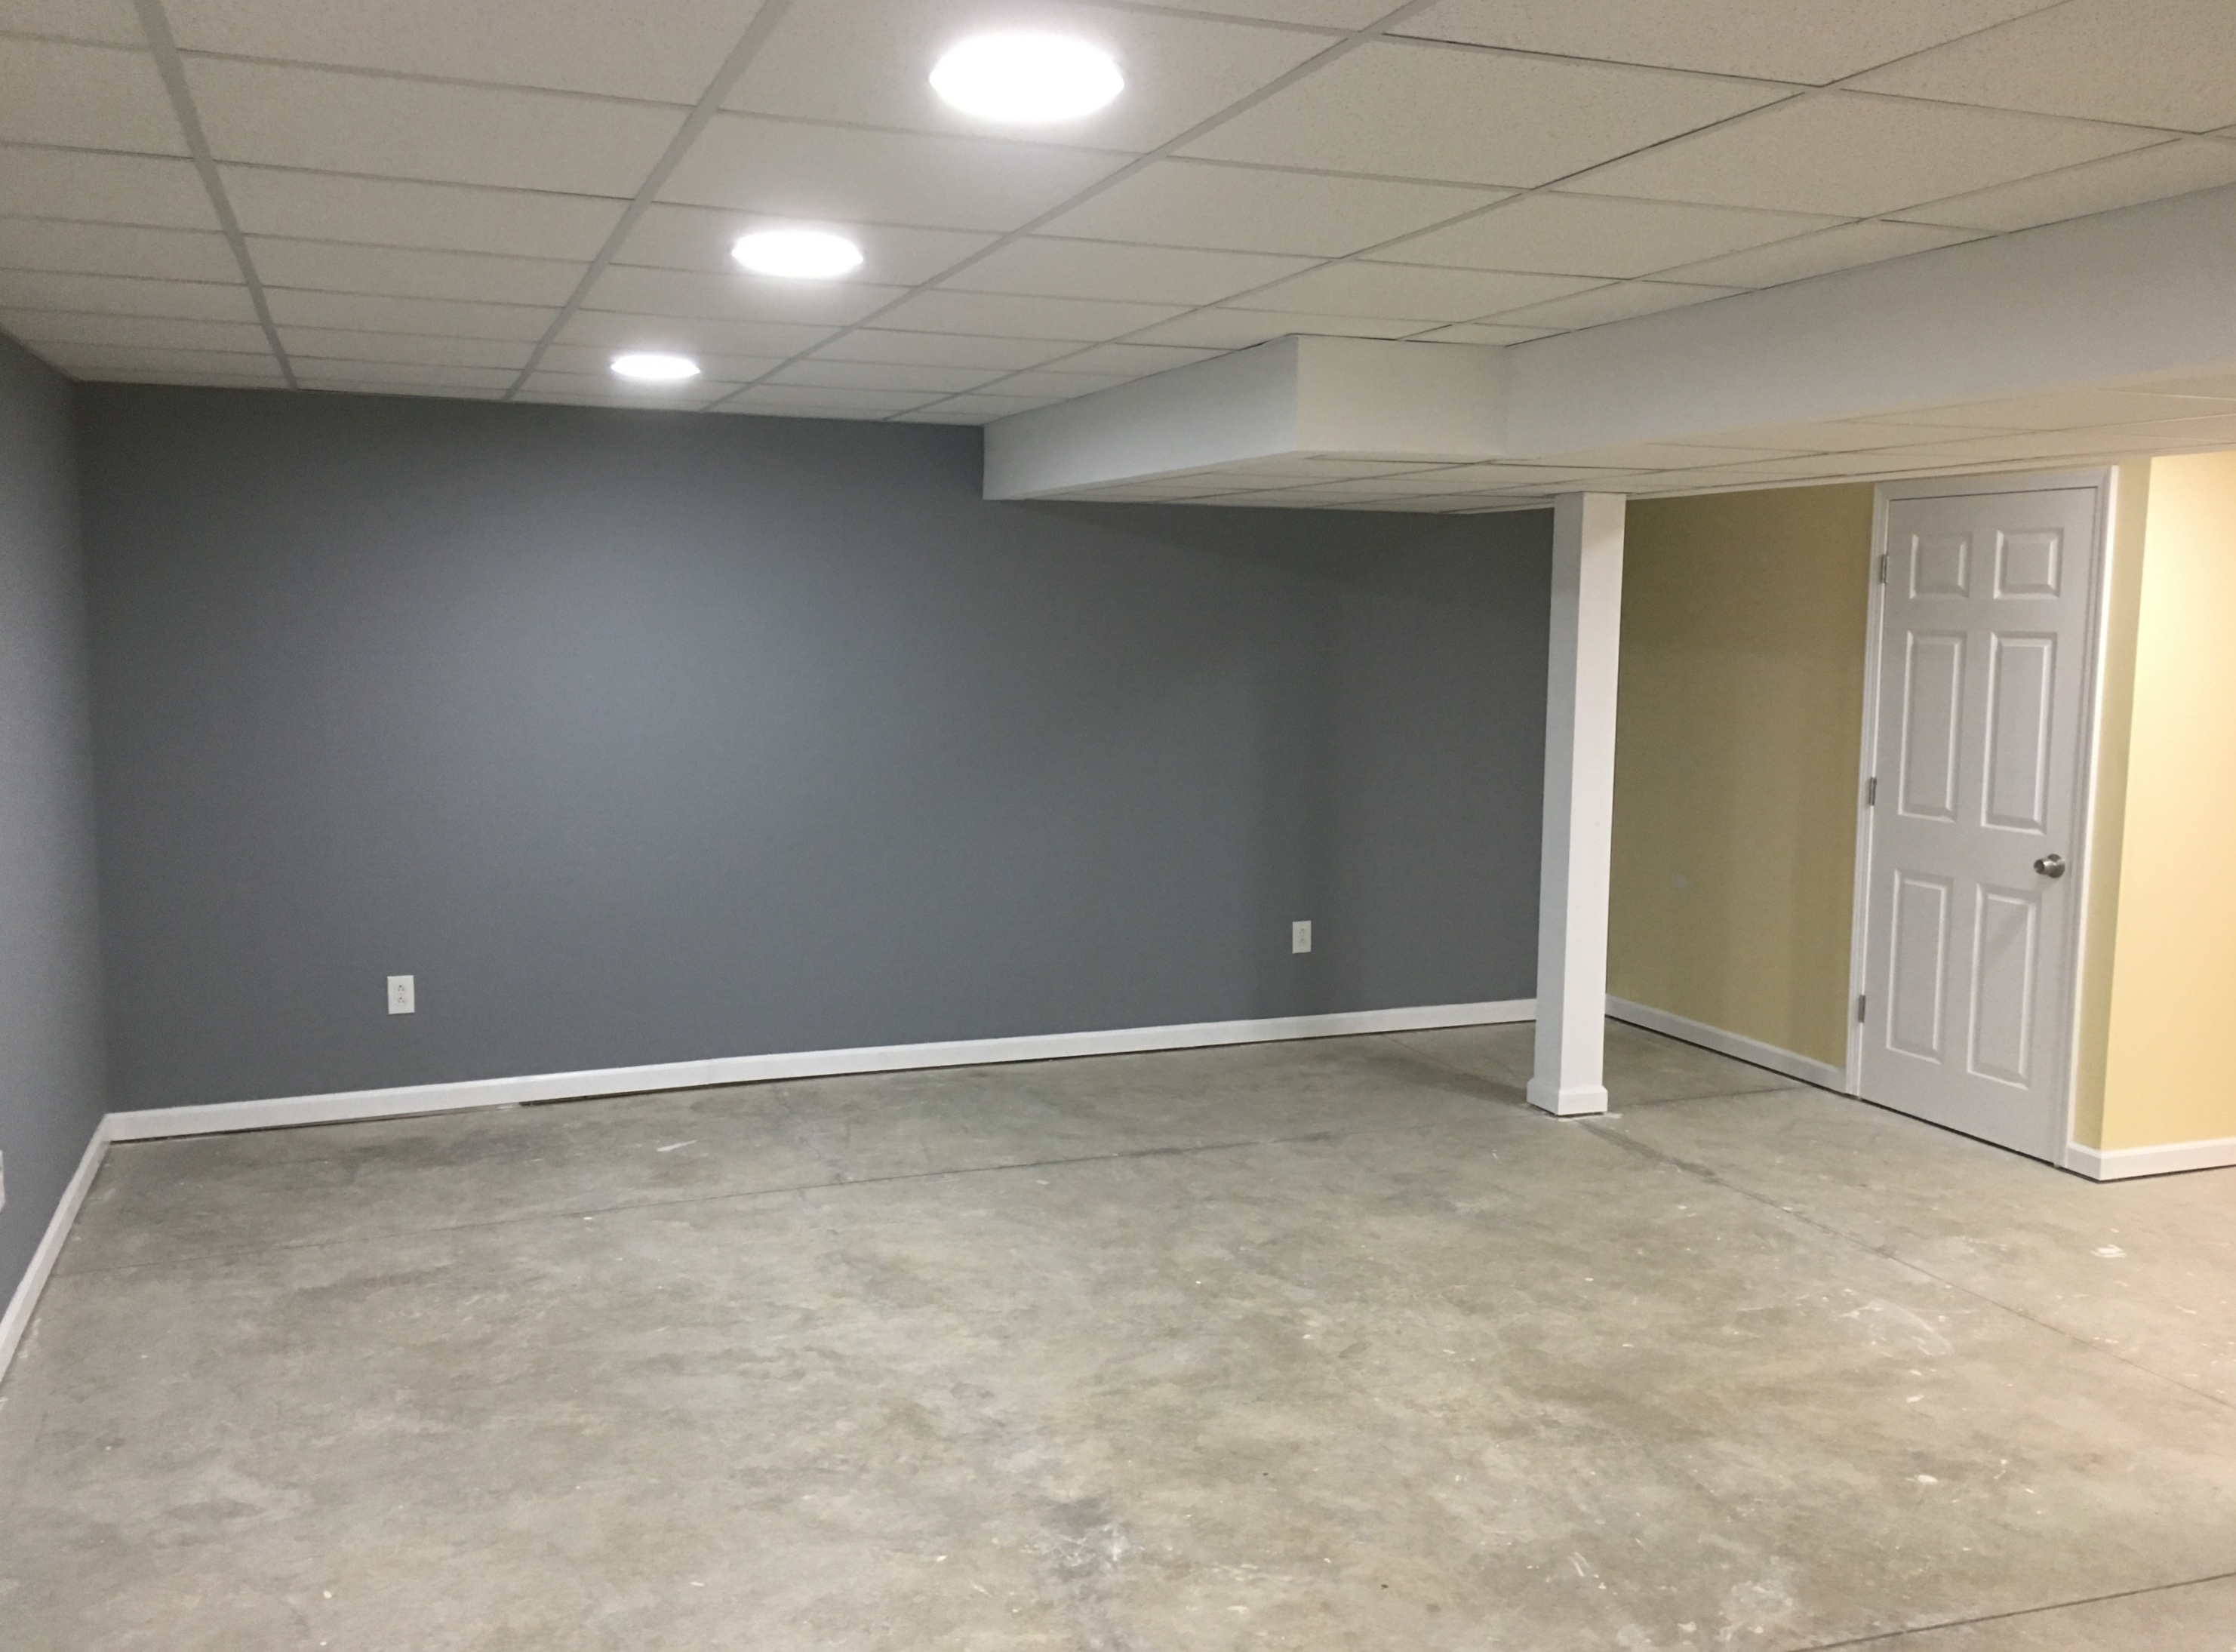 Staged Renovations